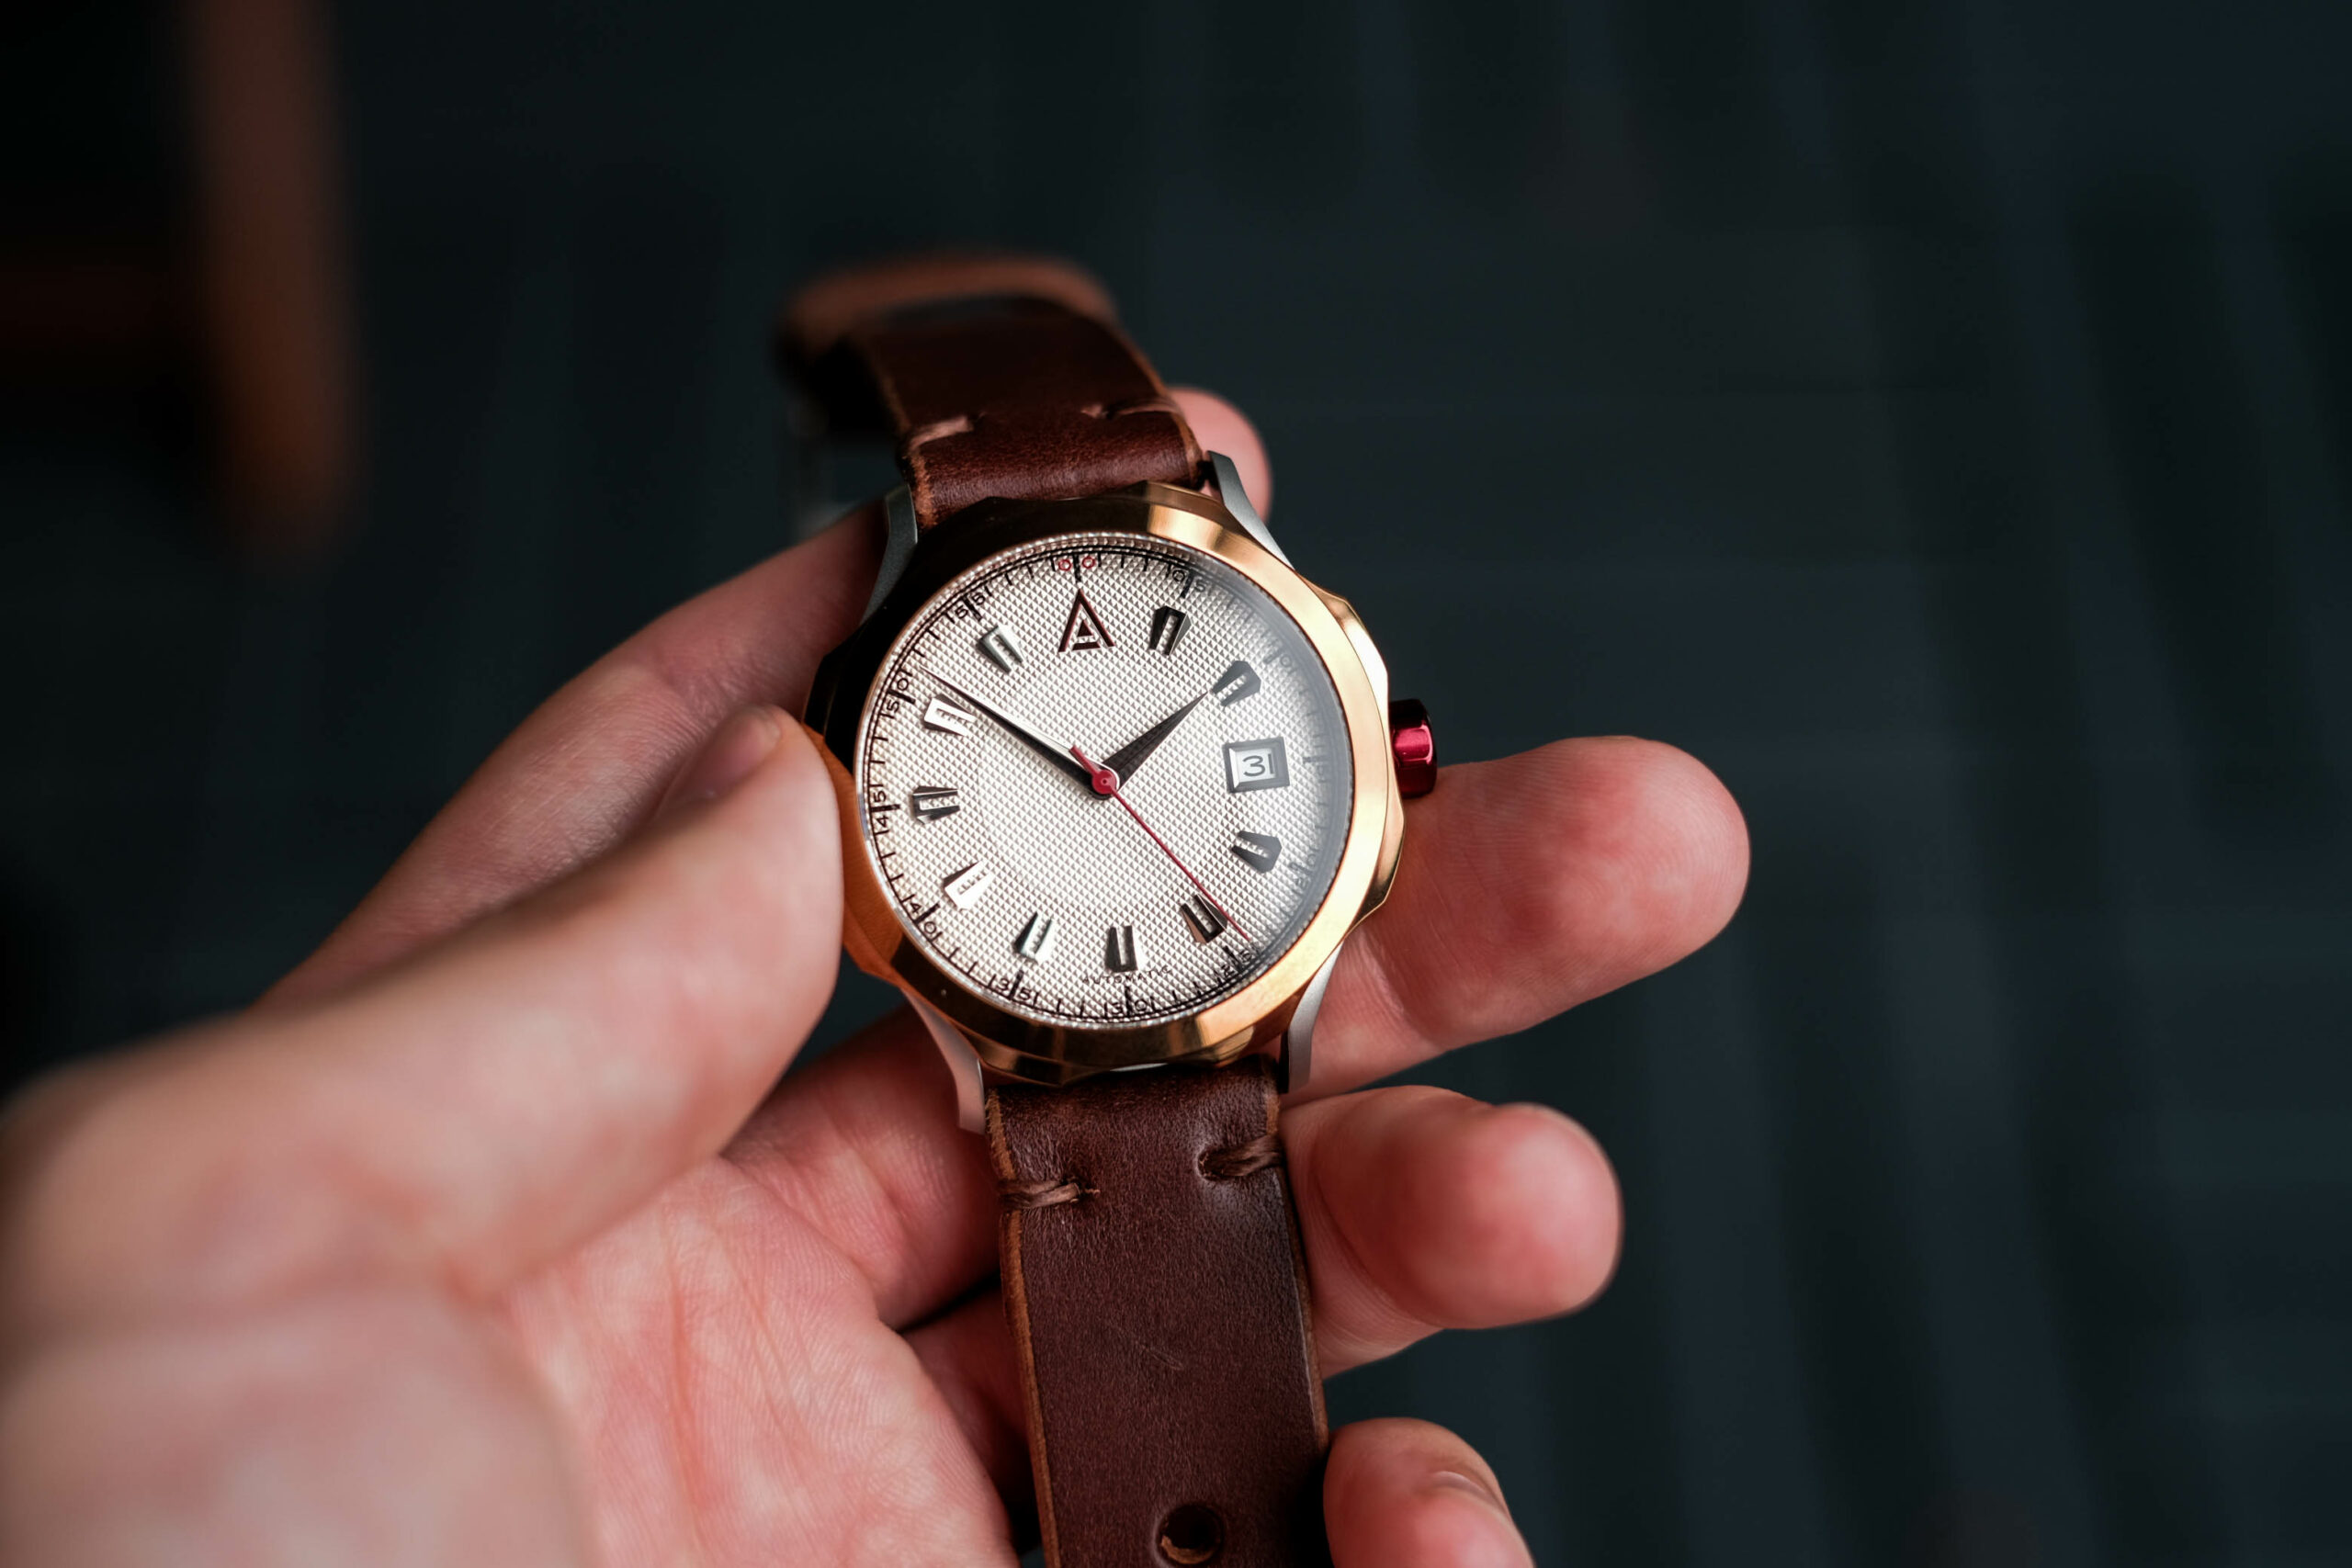 WT Author No 1953 White Automatic Watch Review